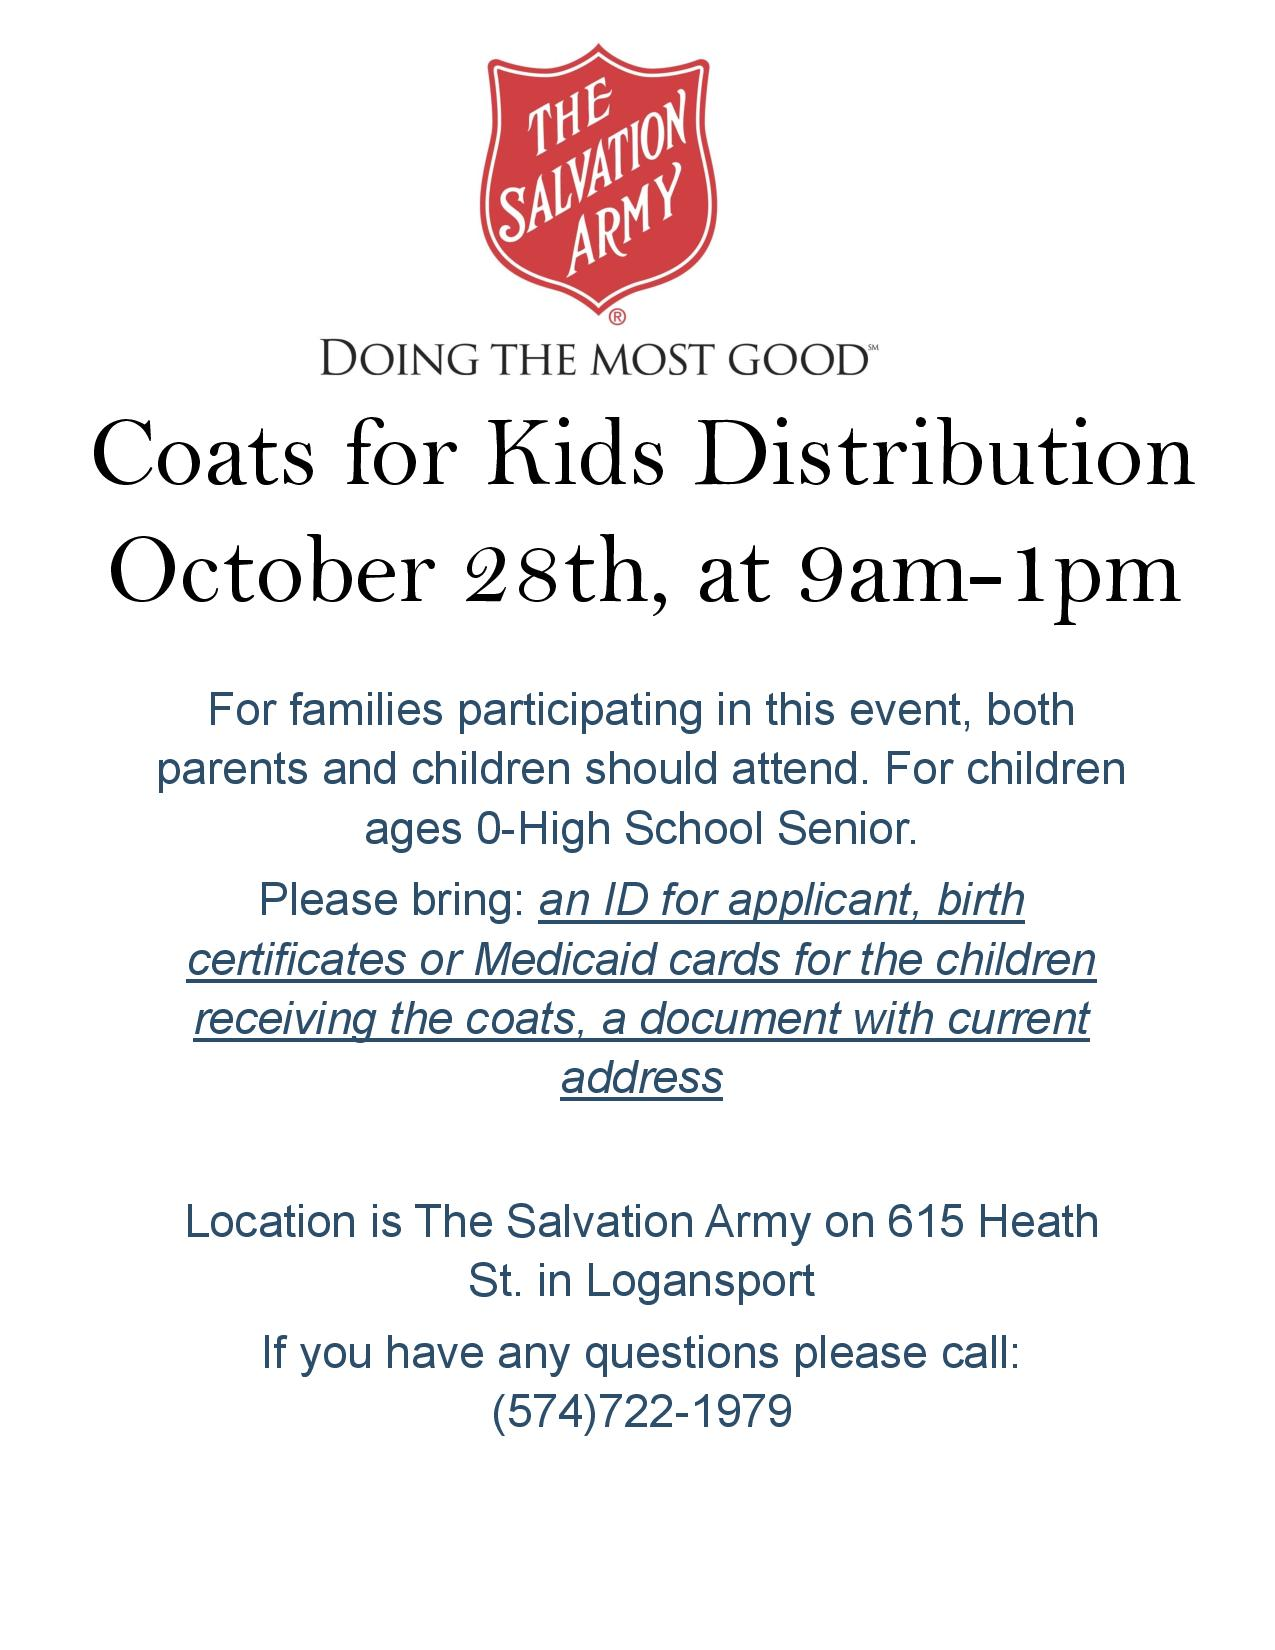 Coats for kids distribution fulton county calendar location is the salvation army 615 heath st logansport if you have questions please call 574 722 1979 aiddatafo Gallery